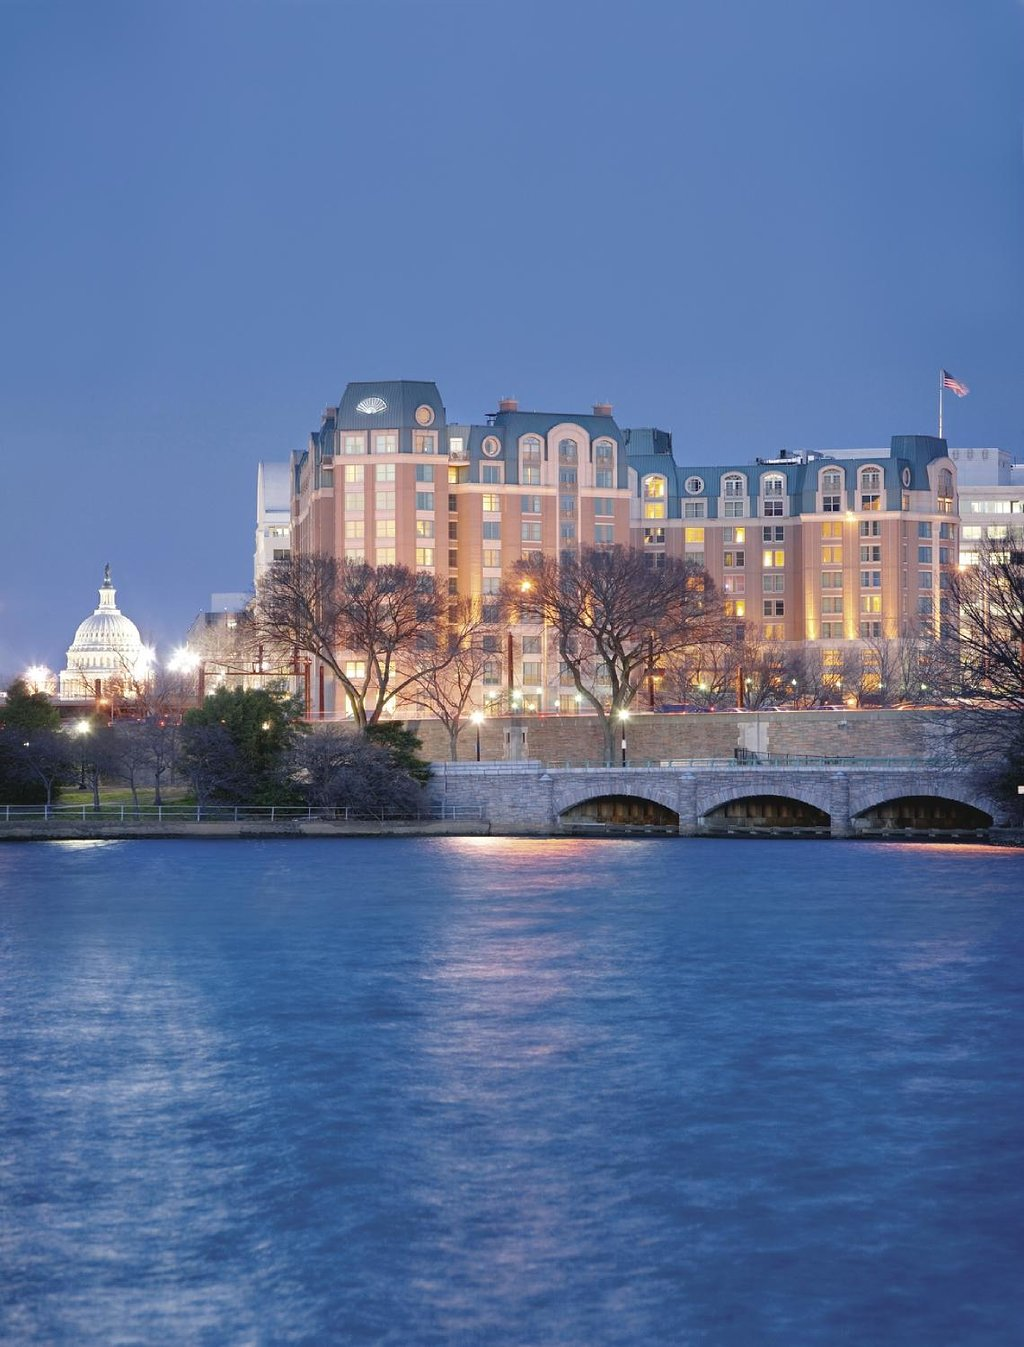 Mandarin Oriental, Washington D.C.